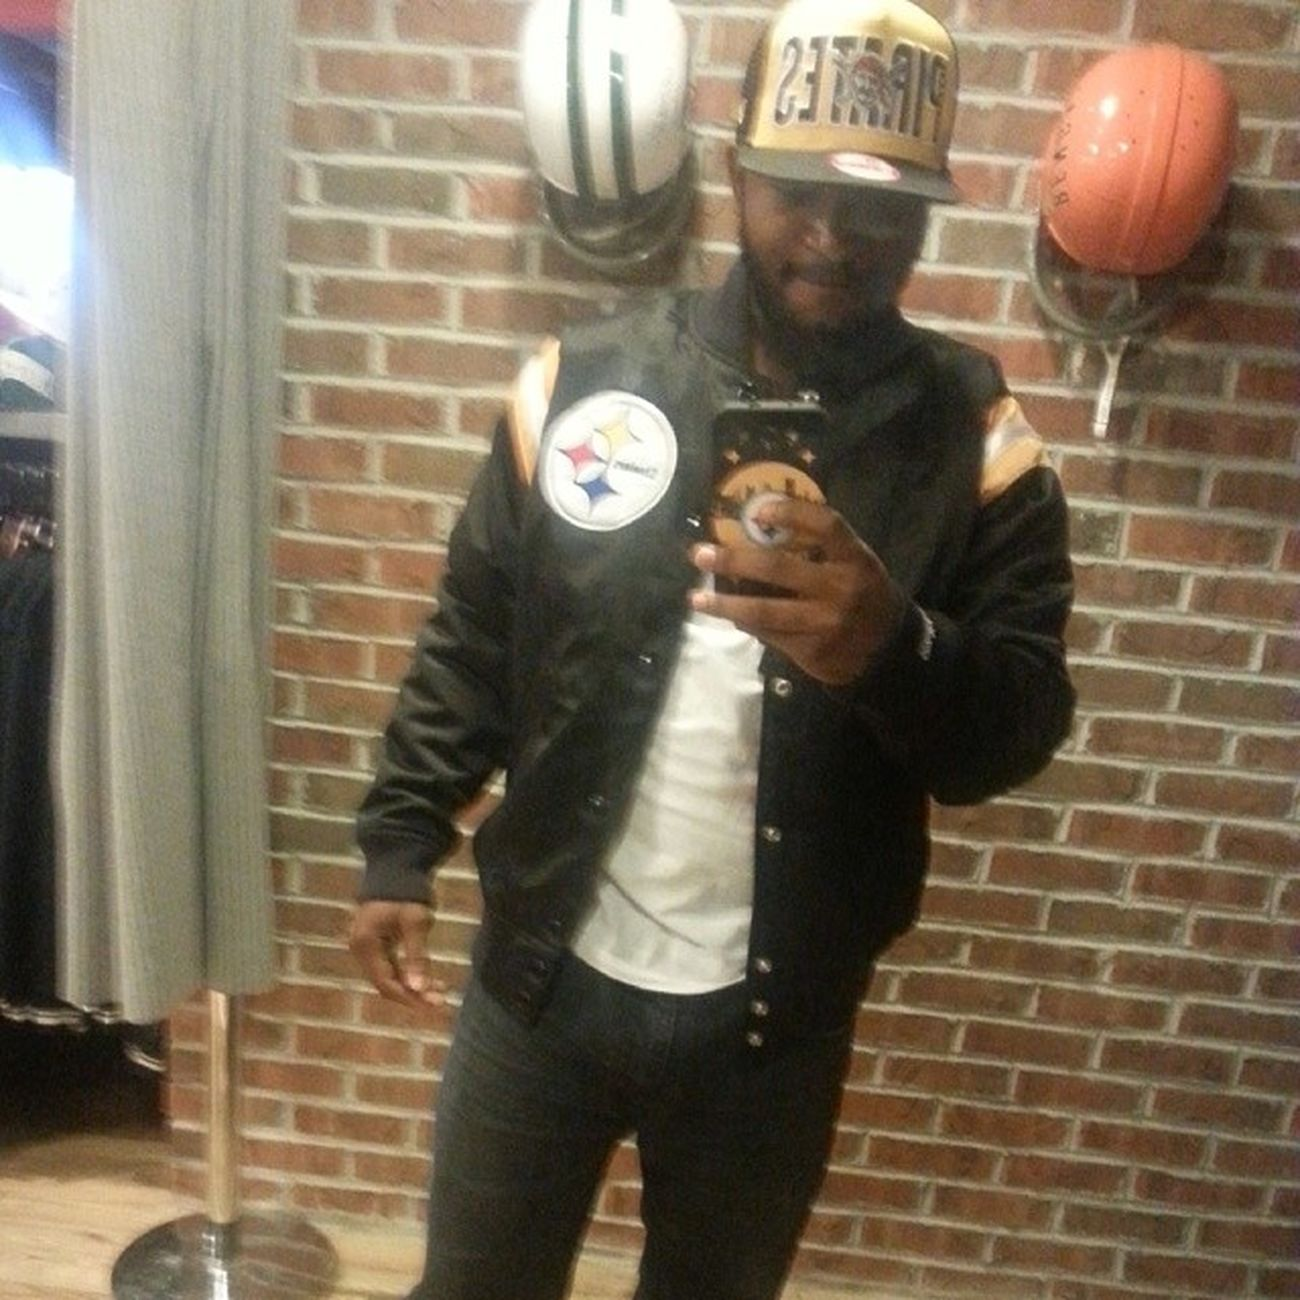 Wardrobe Change... Mitchell &Ness SteelersJacket PiratesHat wit da matching J's